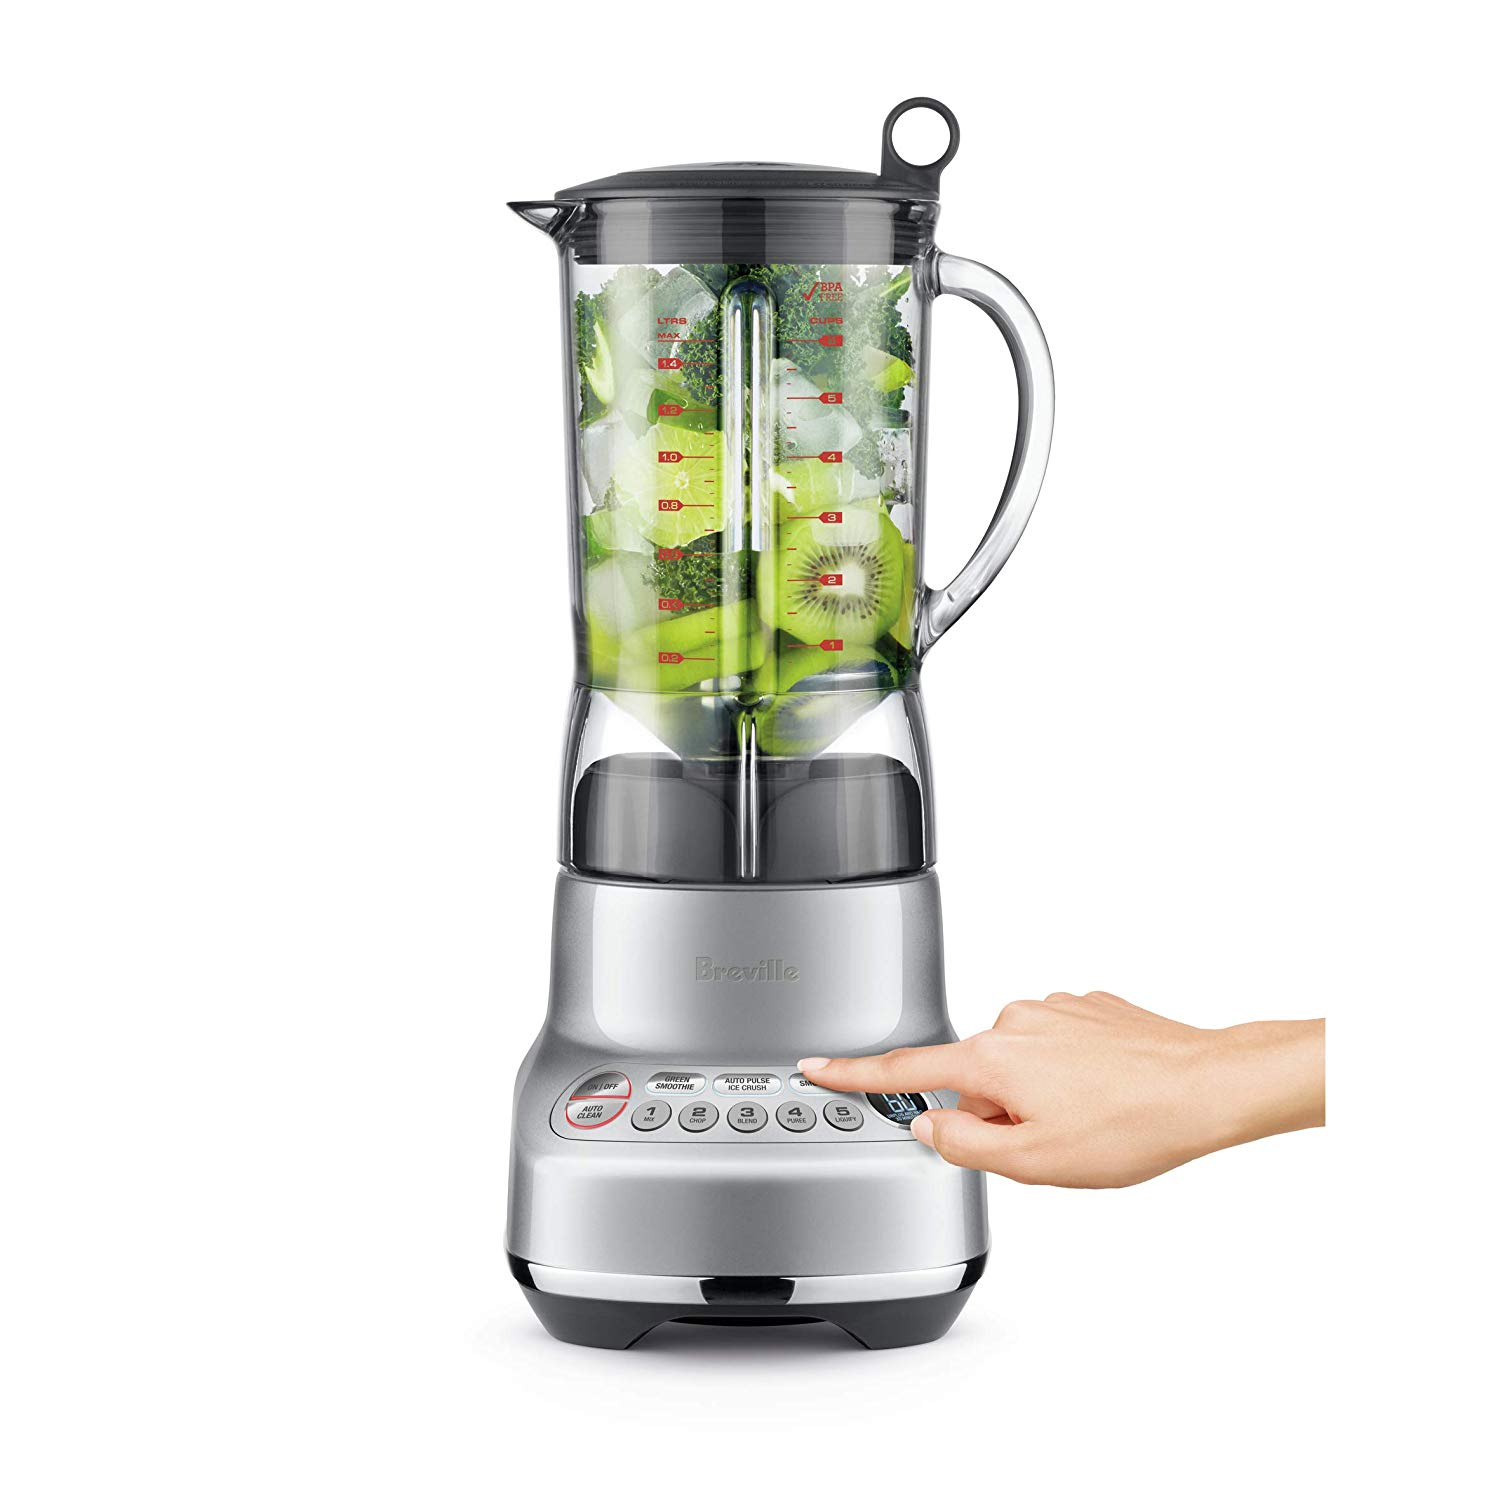 This is a top choice blender.